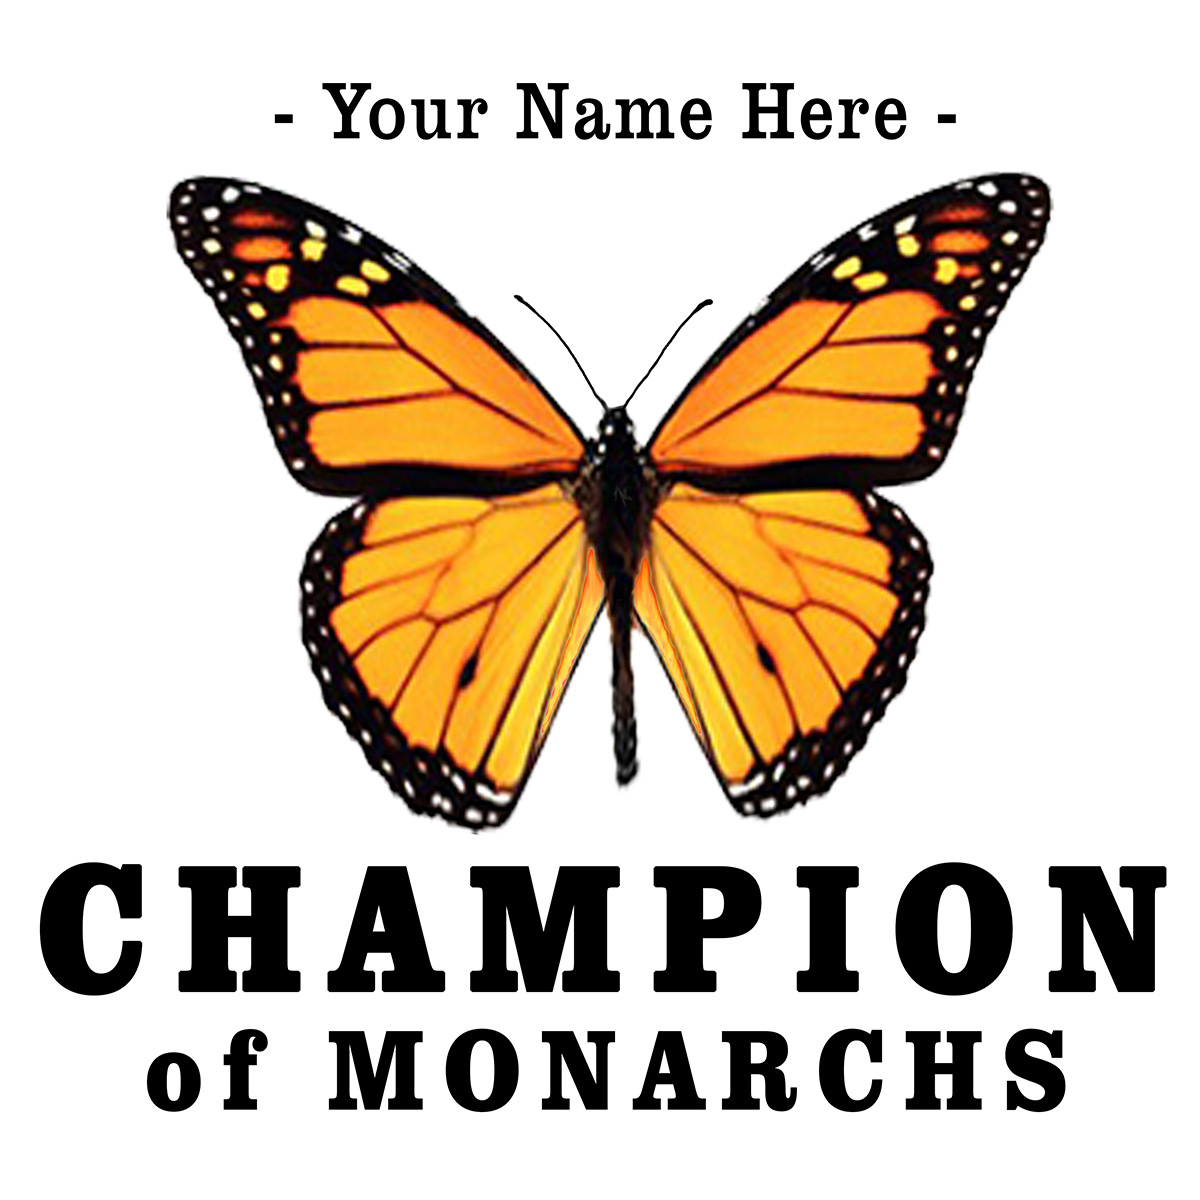 Champion of Monarchs Shirt